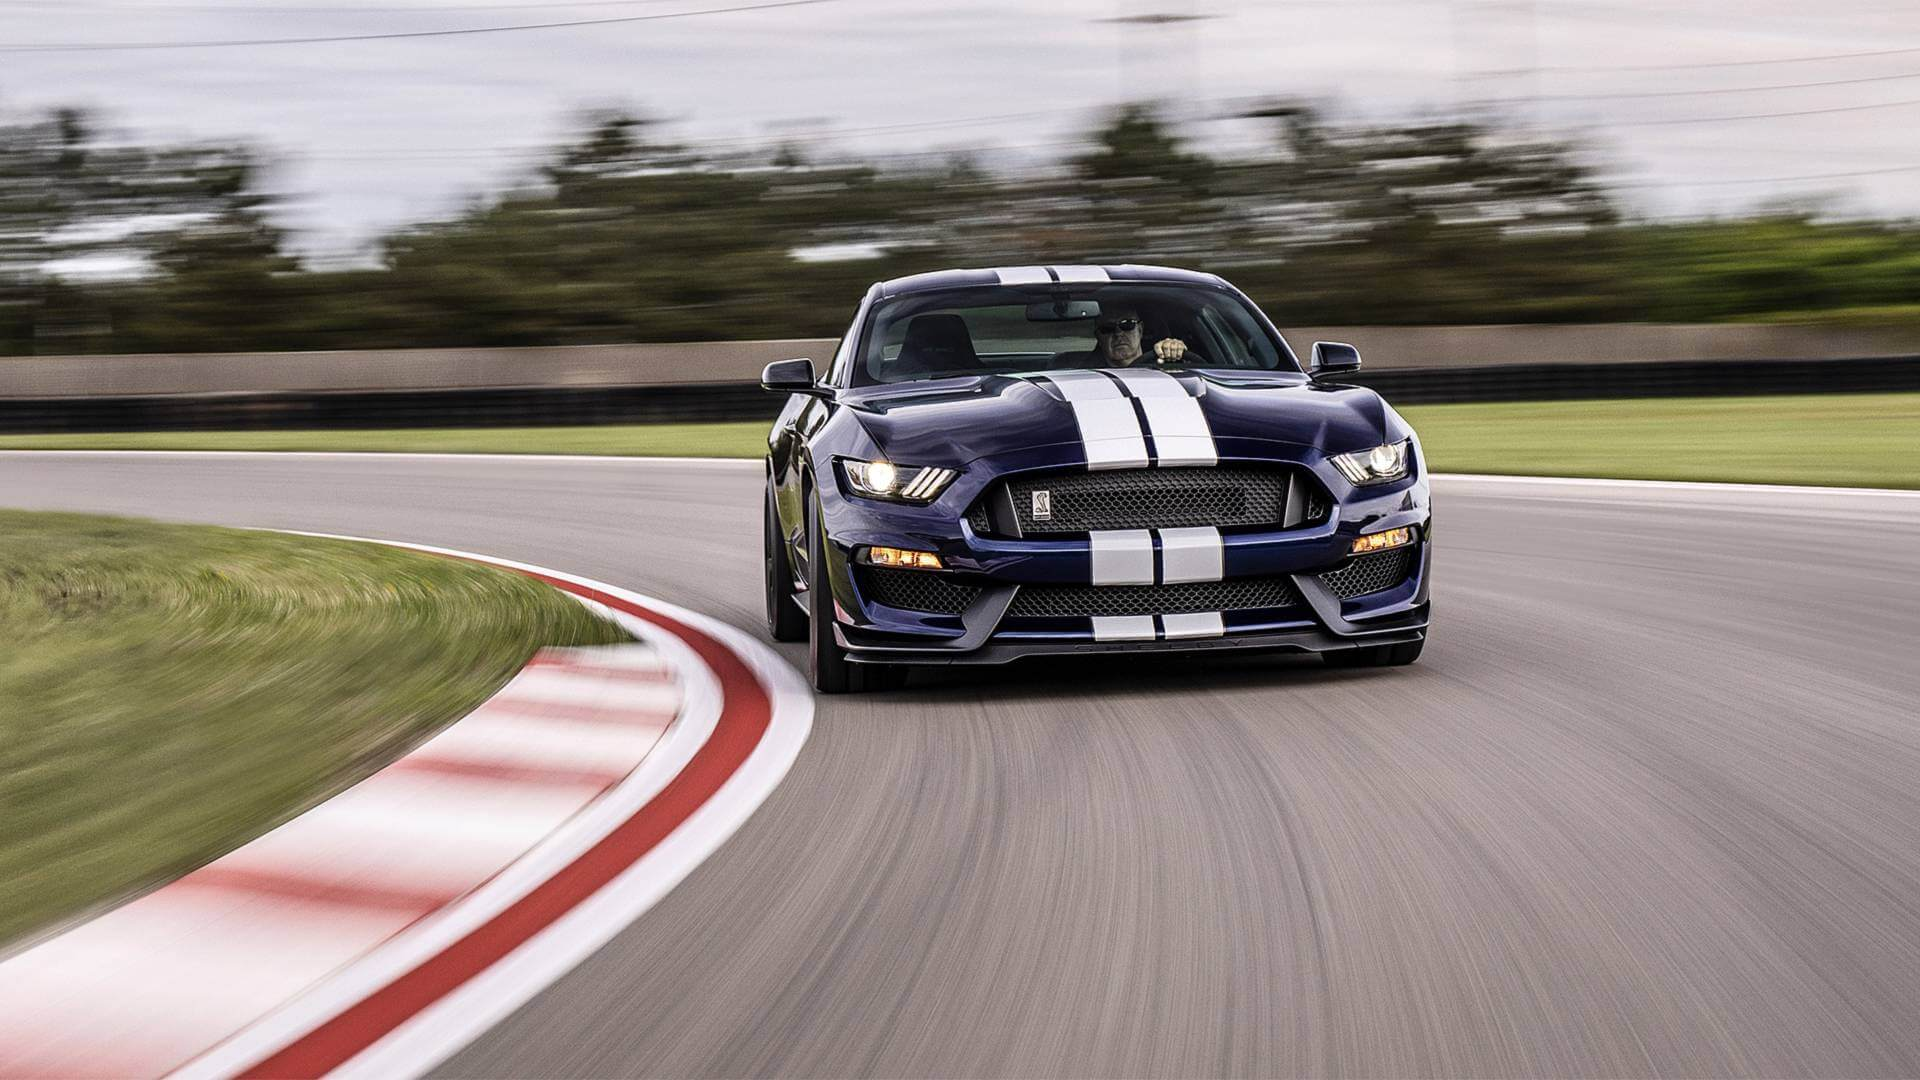 2019 Shelby GT350 and GT350R Order Guide